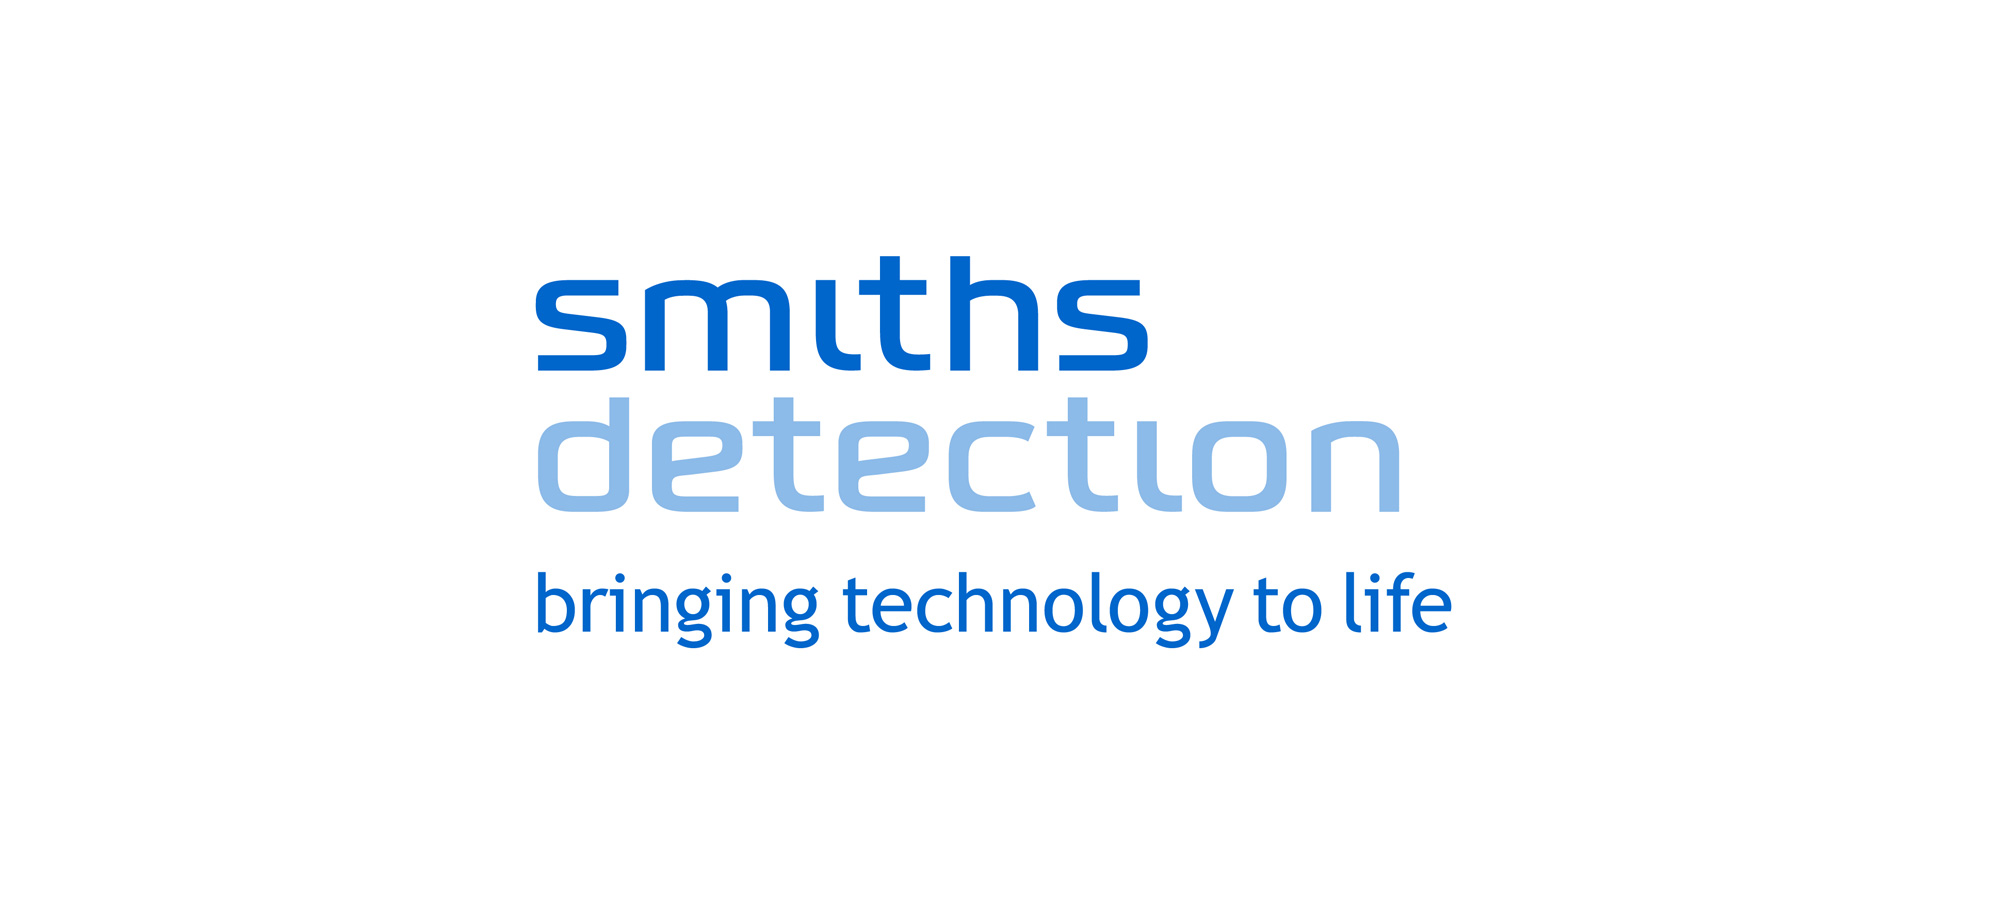 Smiths Detection - We proudly represent SMITHS DETECTION as they deliver detection technologies for military, transportation, homeland security and resilience application to ensure the safety and security of people and assets.